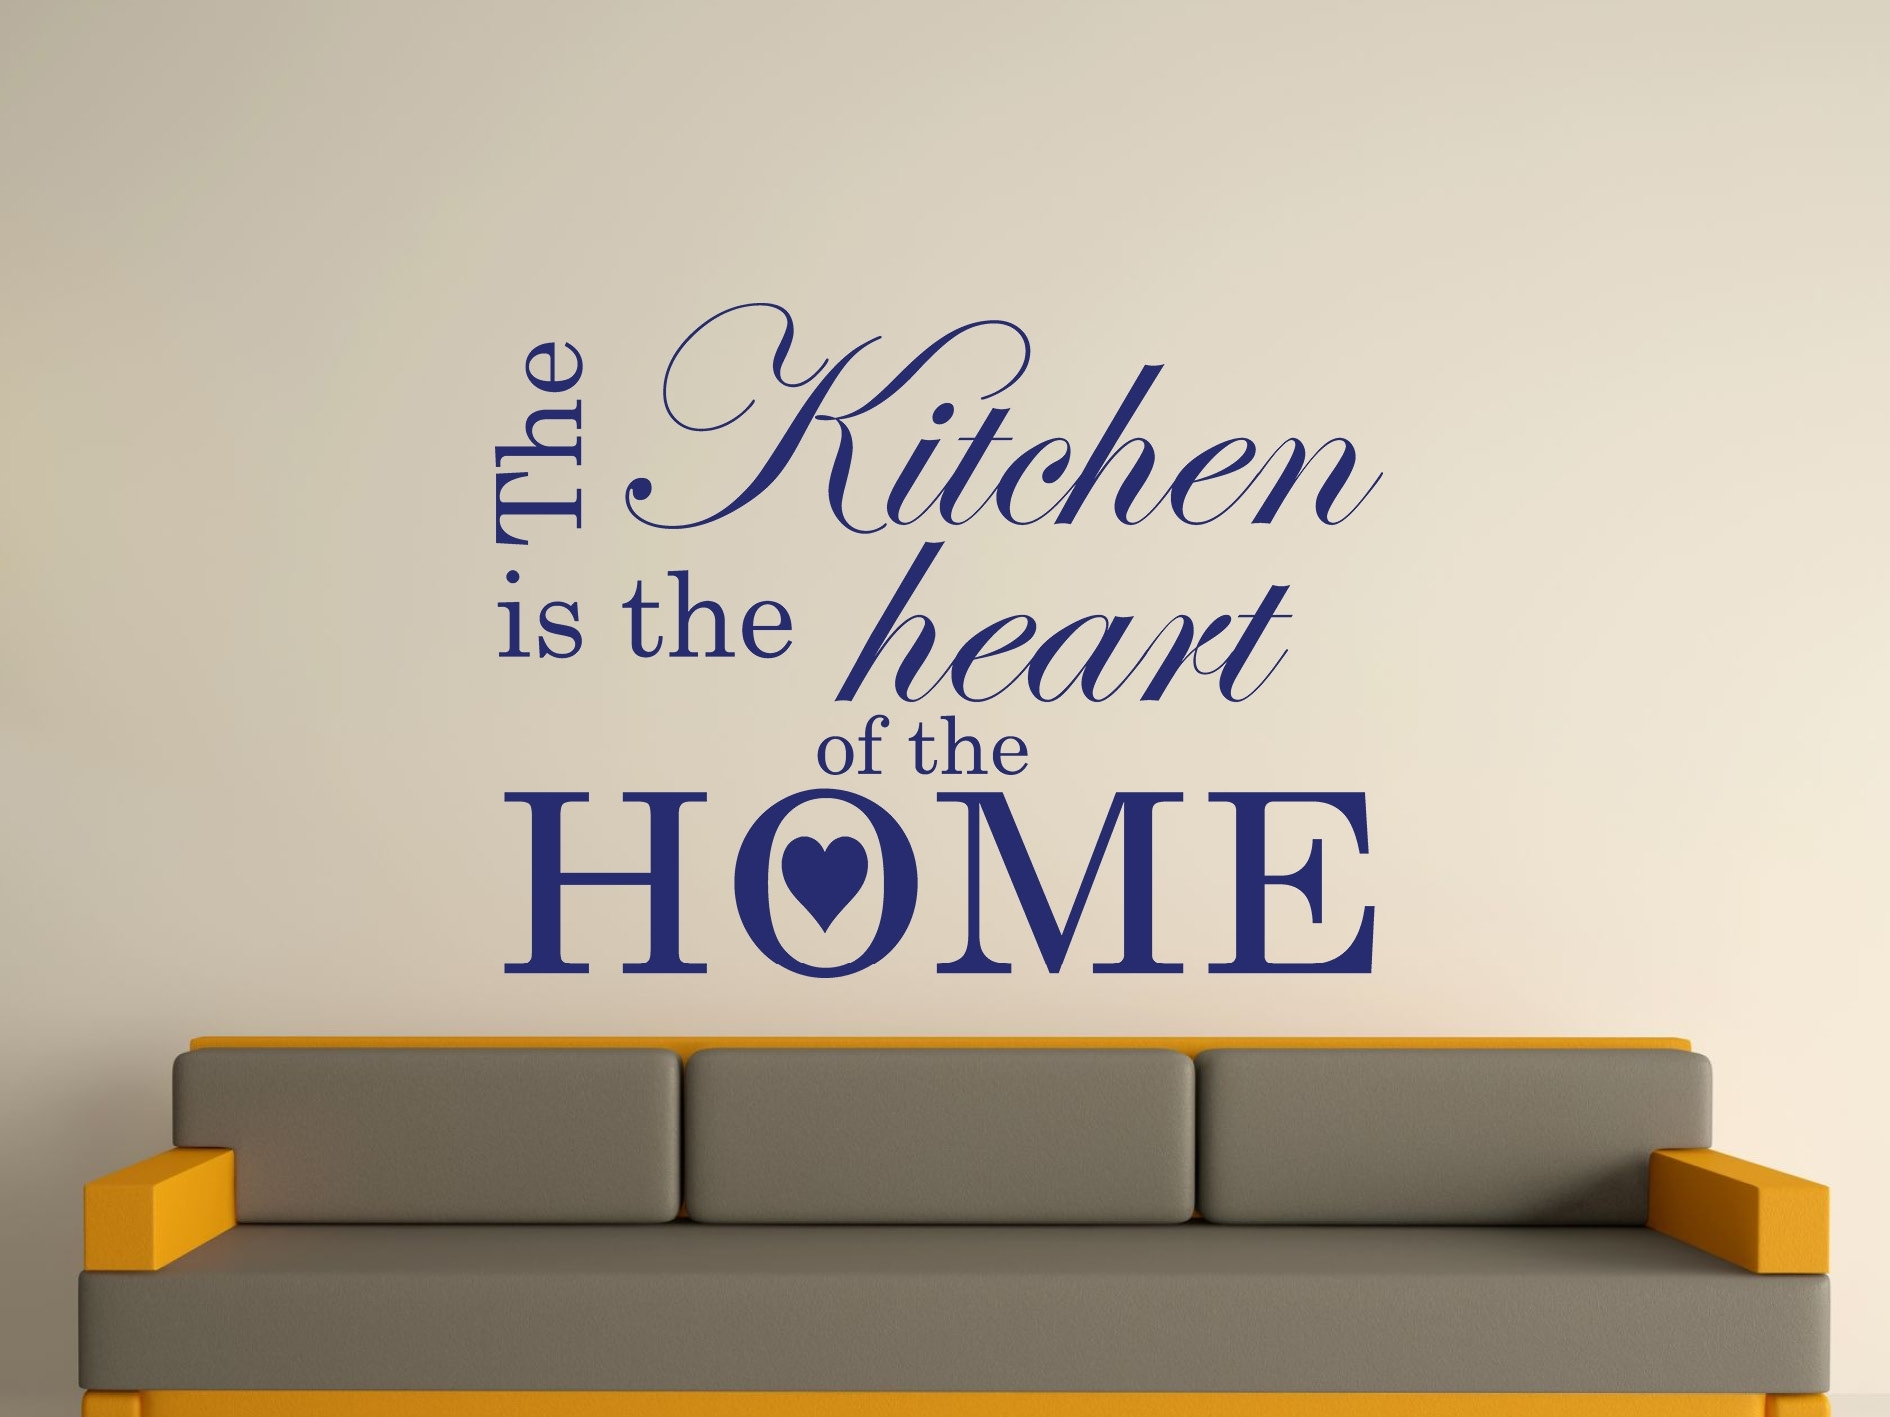 The Kitchen Is The Heart Of The Home Wall Art Sticker Text 3 Sizes Intended For 2017 Wall Art Stickers (View 11 of 15)